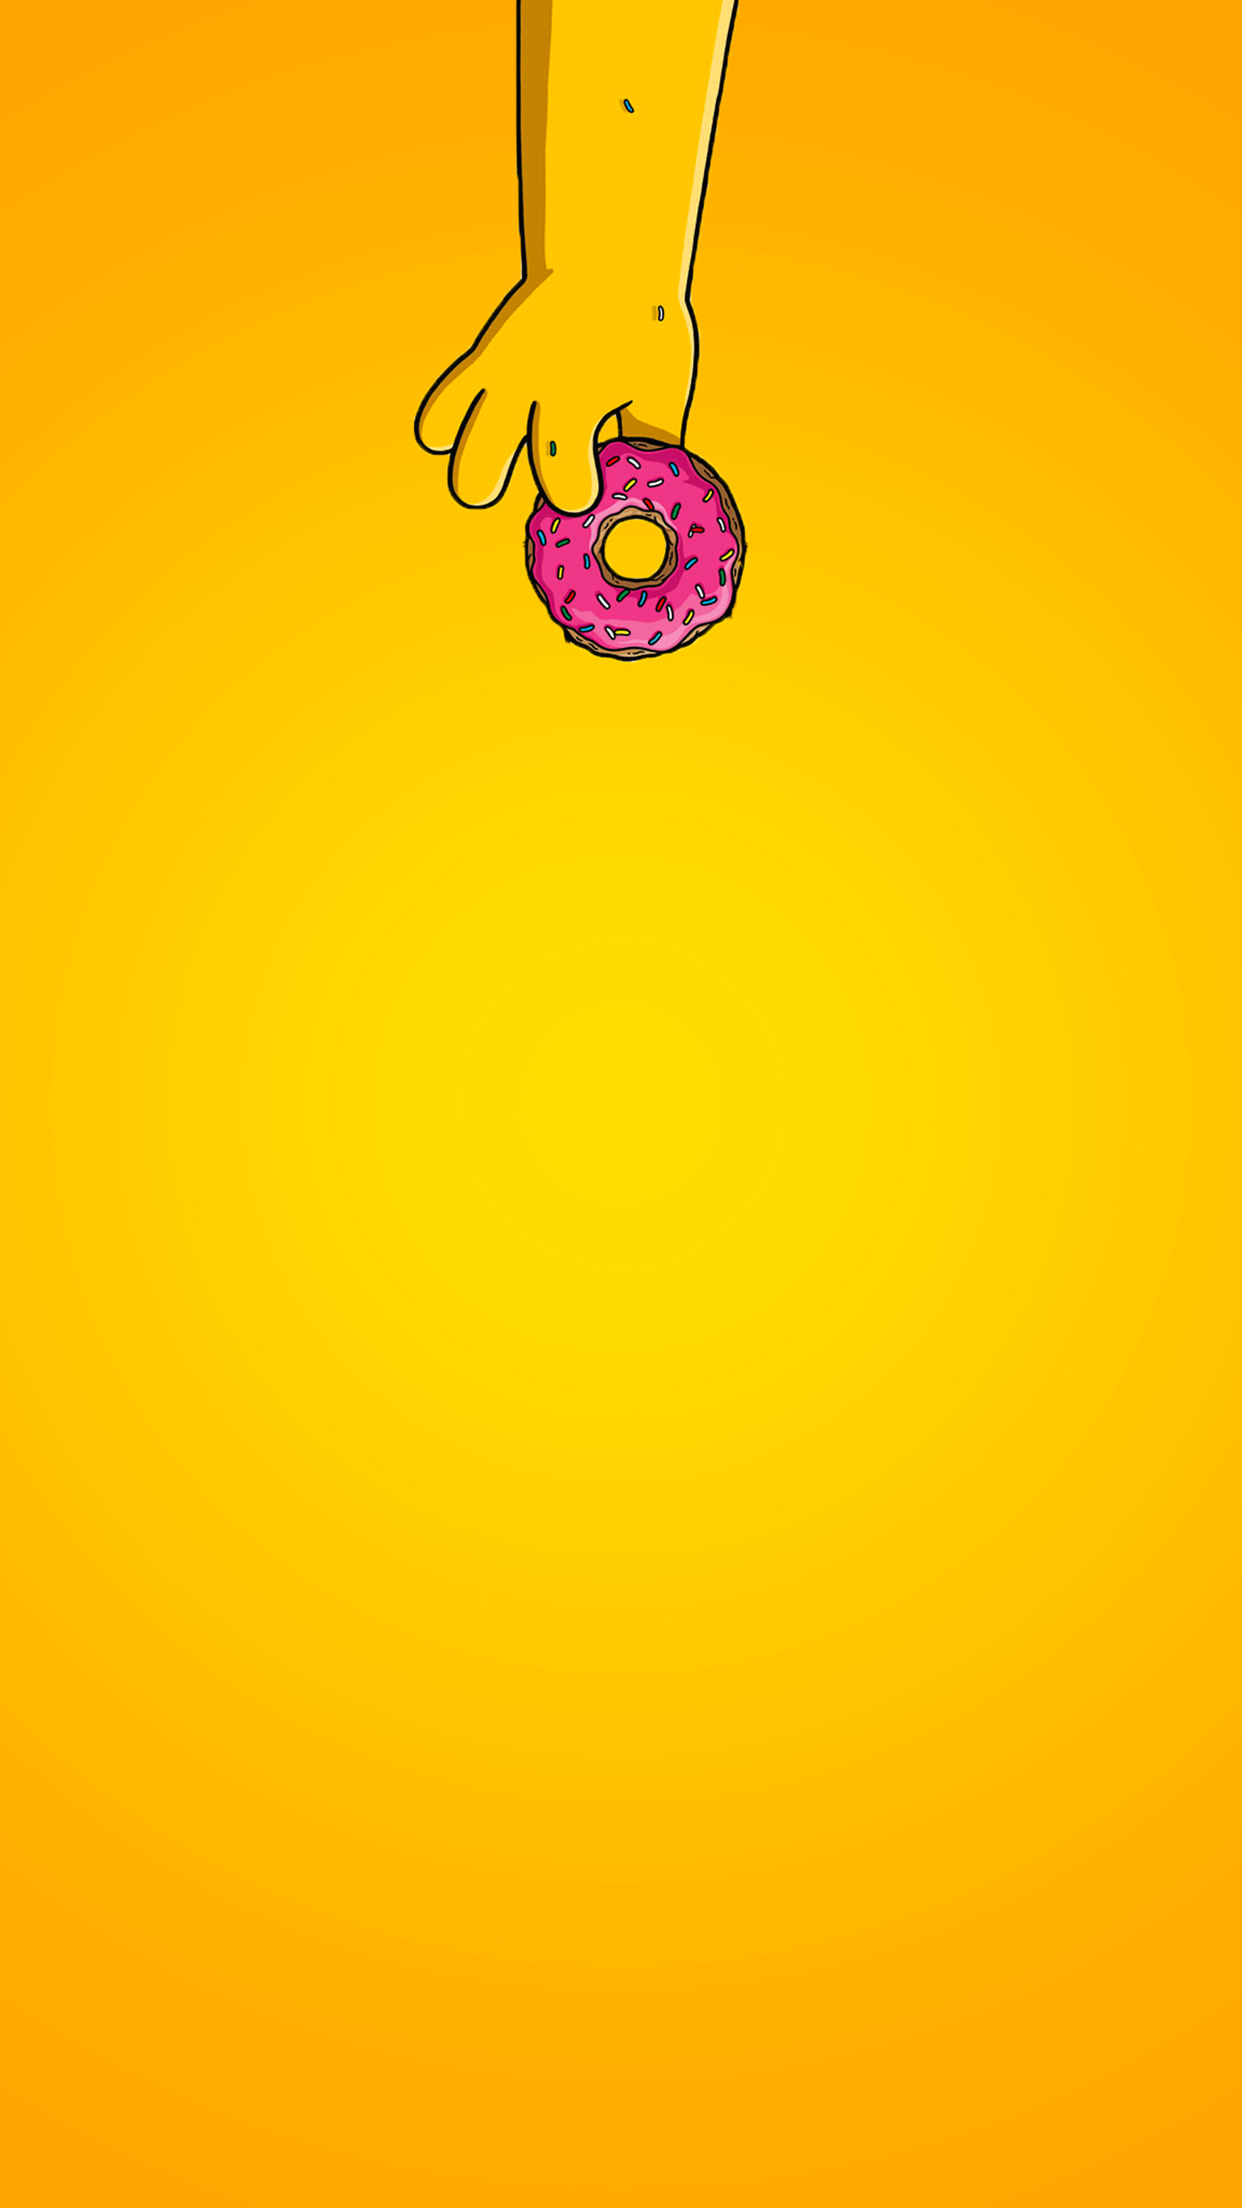 Simpsons Yellow Woohoo Donut 3Wallpapers iPhone Parallax Simpsons Yellow Woohoo Donut